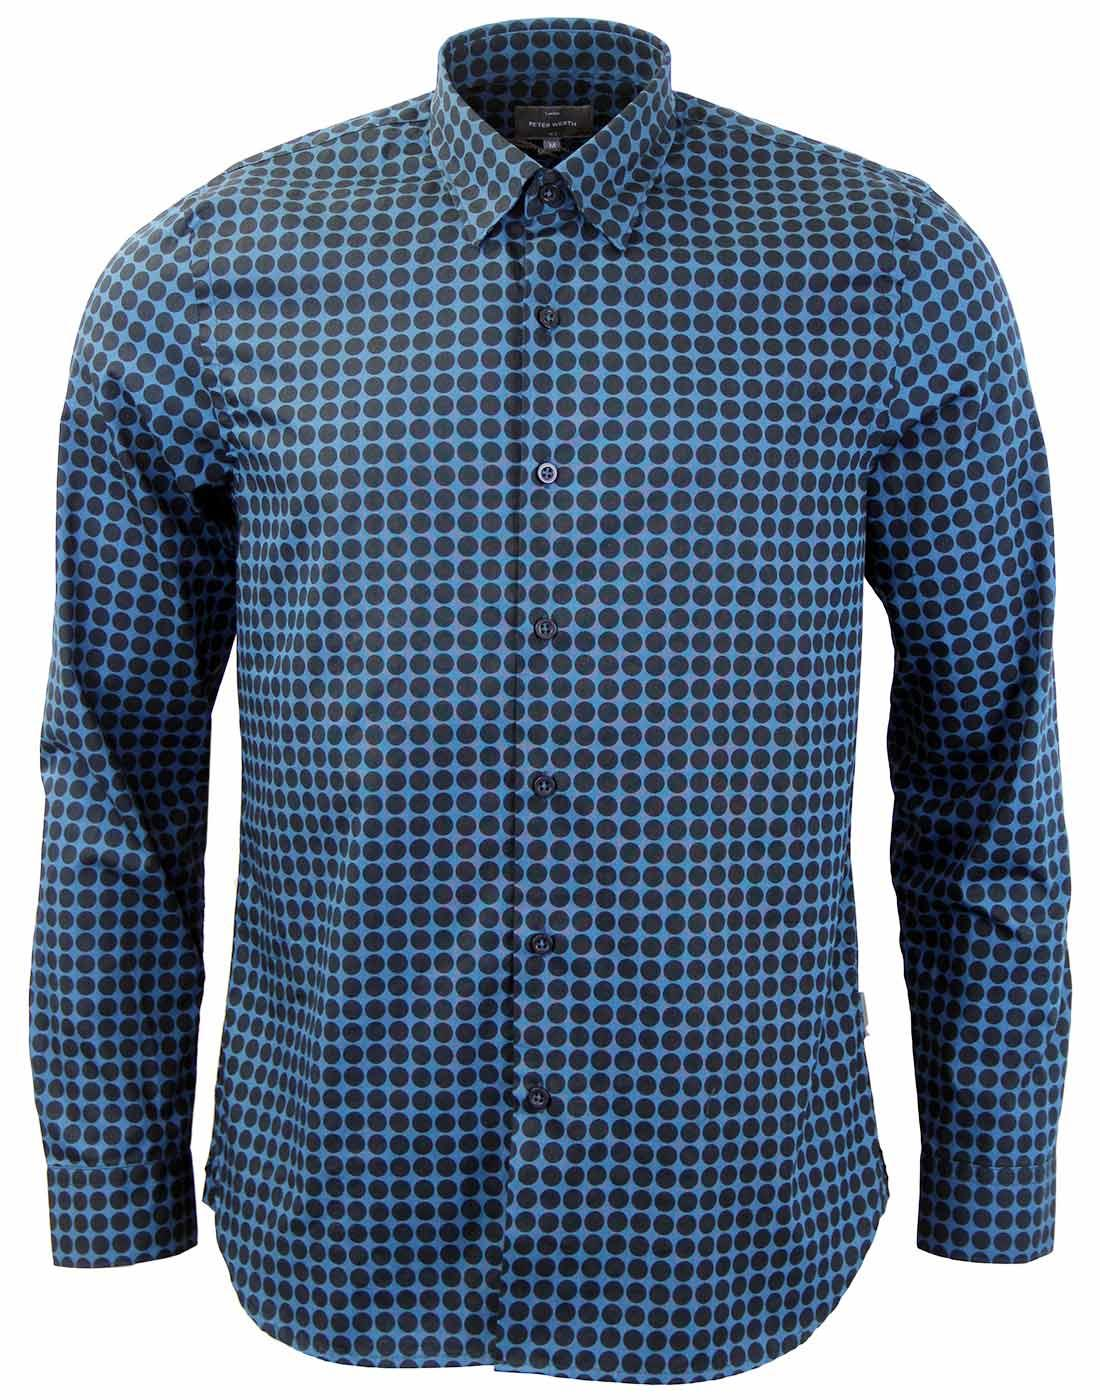 Daily PETER WERTH  Retro Mod Polka Dot Shirt